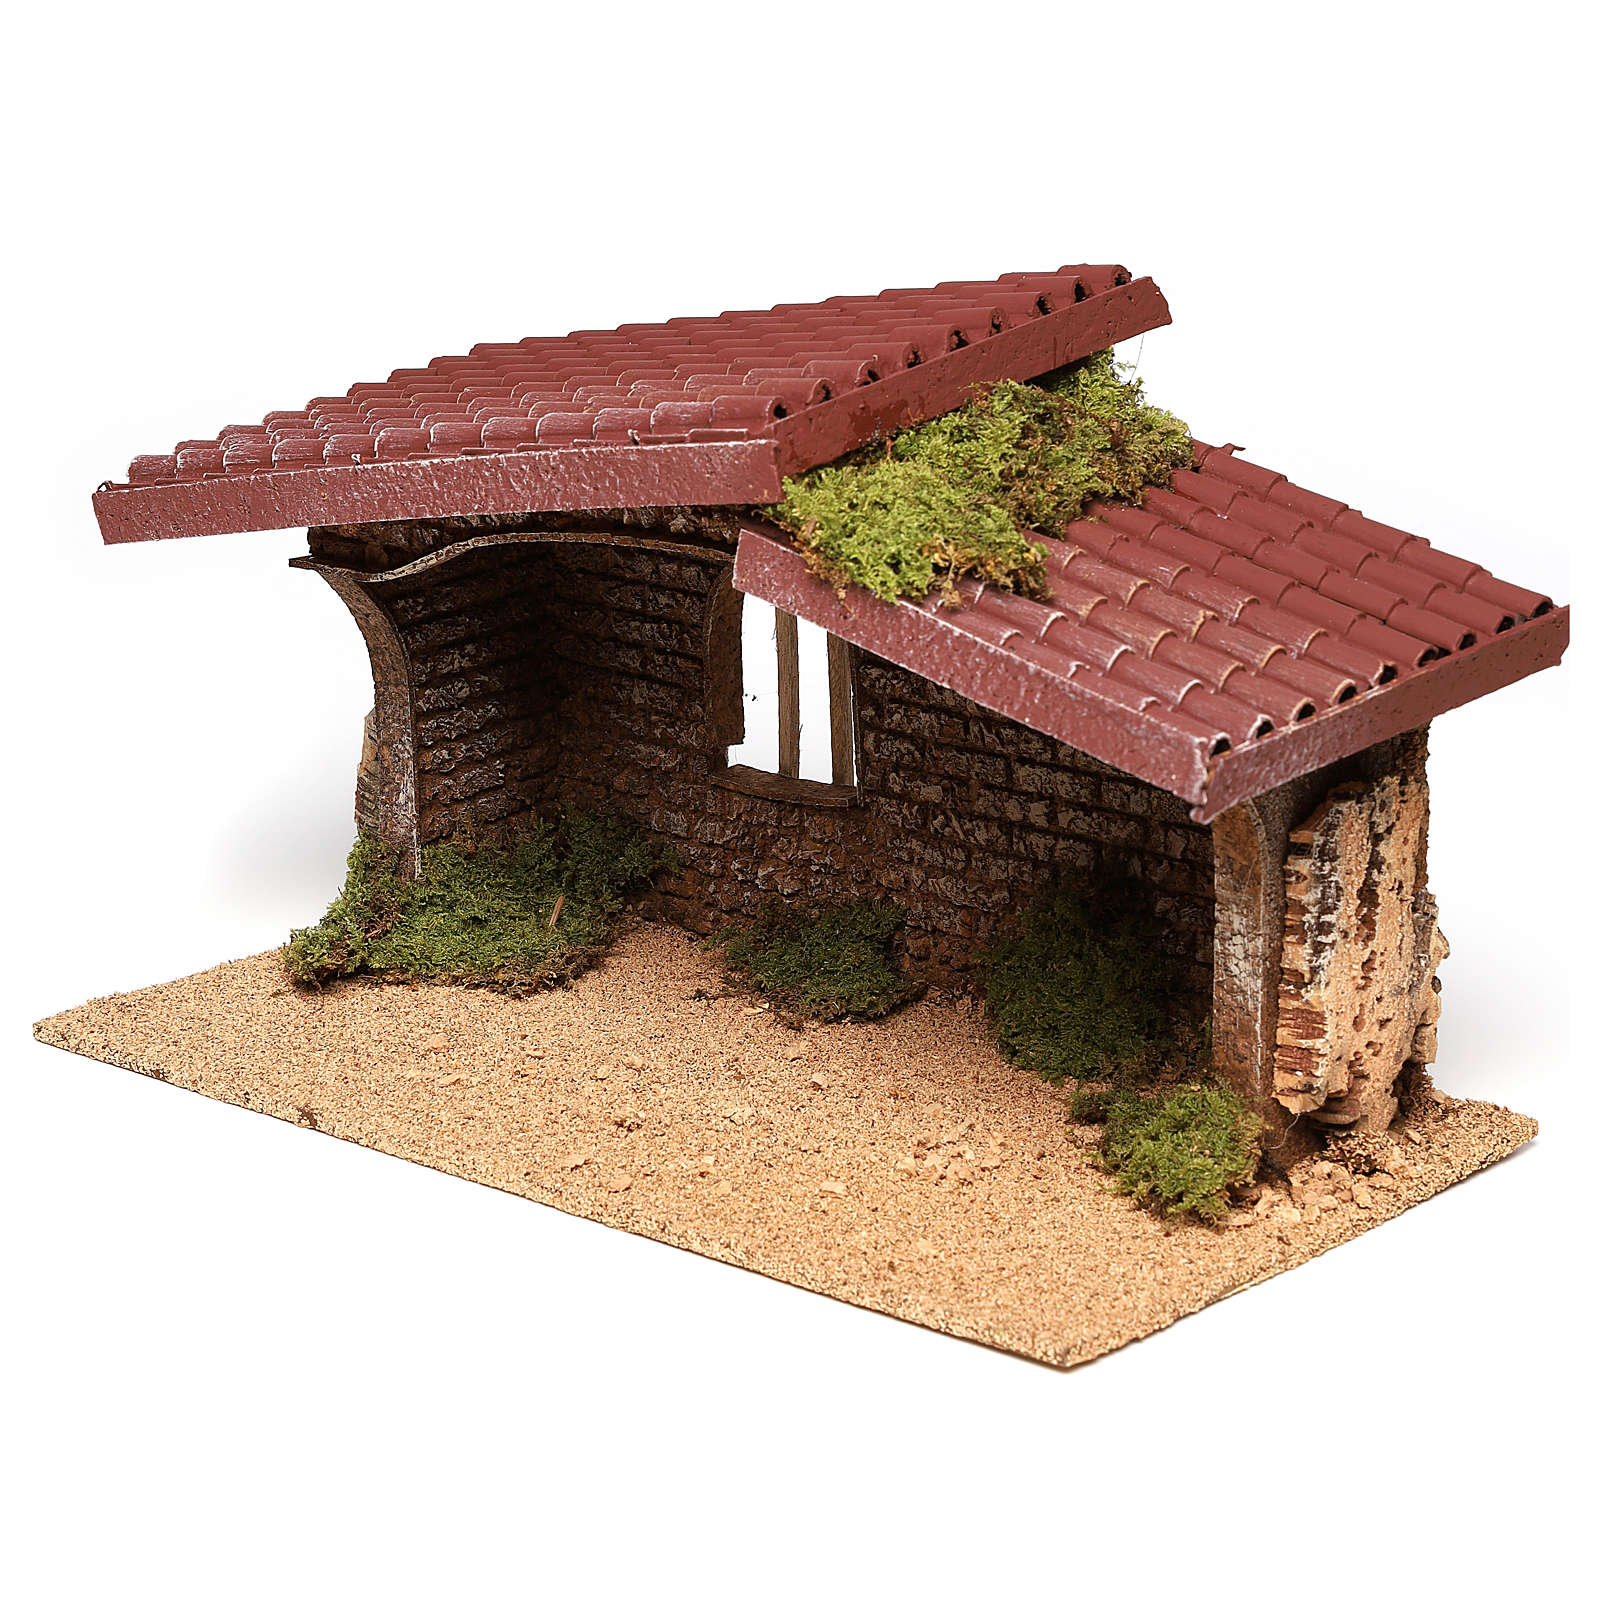 Cork and moss hut 21x35x20 cm 4